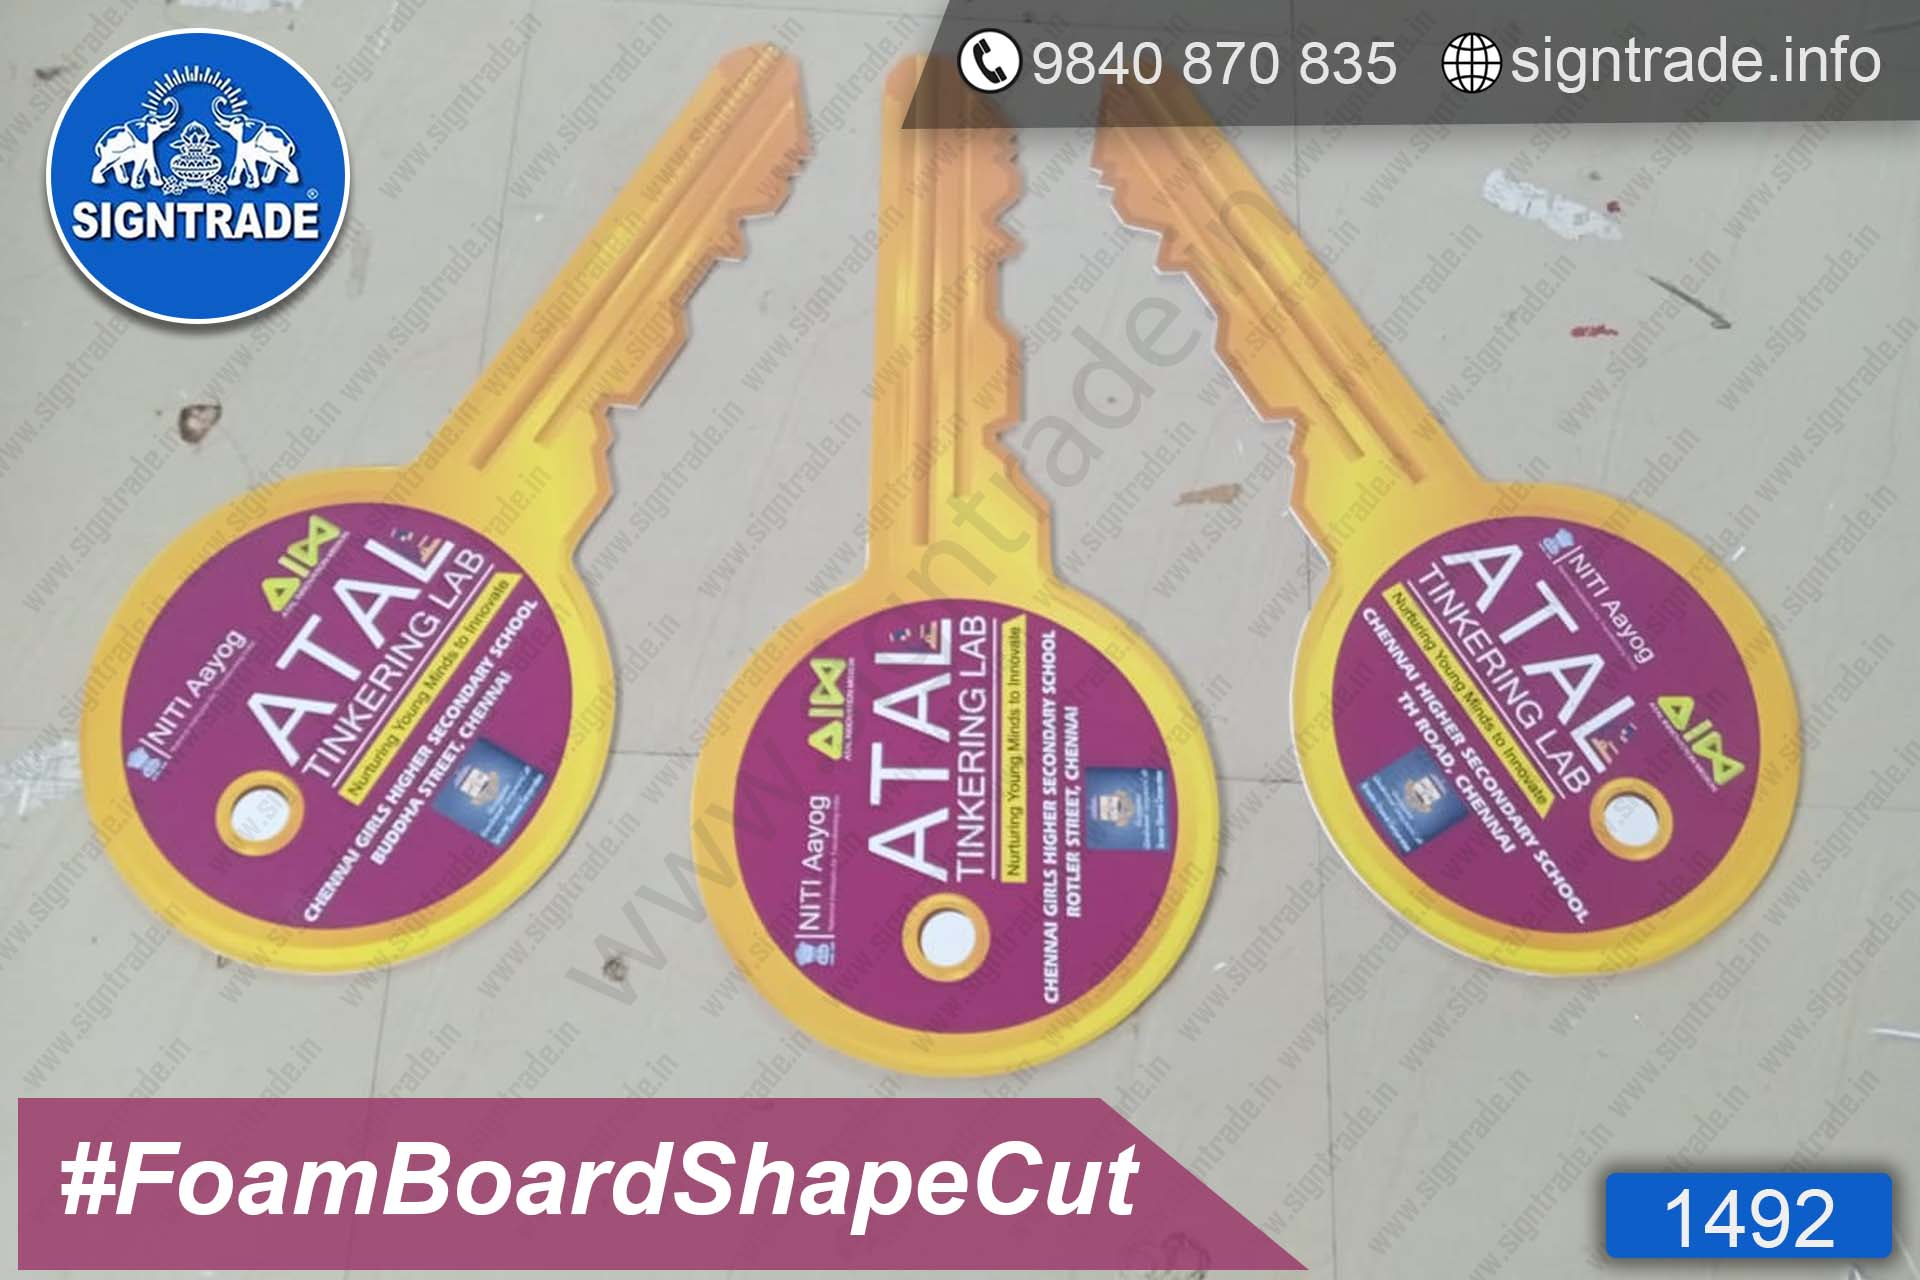 1492, Atal Tinkering Lab - Chennai - SIGNTRADE - Foam Board Shape Cut, Foam Board Promotional Cutout Display Stand Manufacturers in Chennai